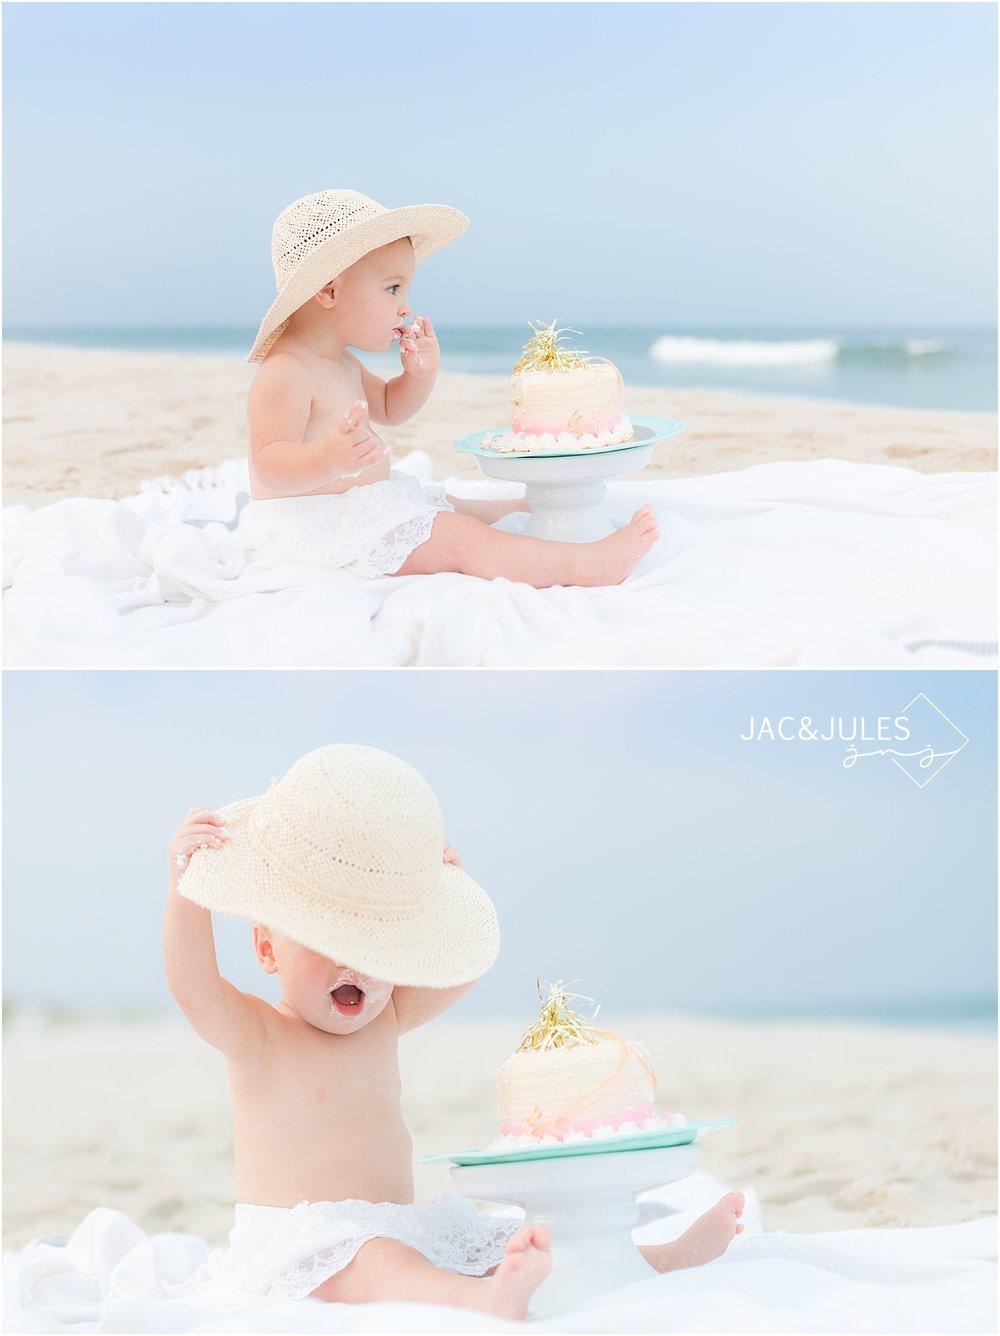 cake smash birthday photos on the beach in new jersey